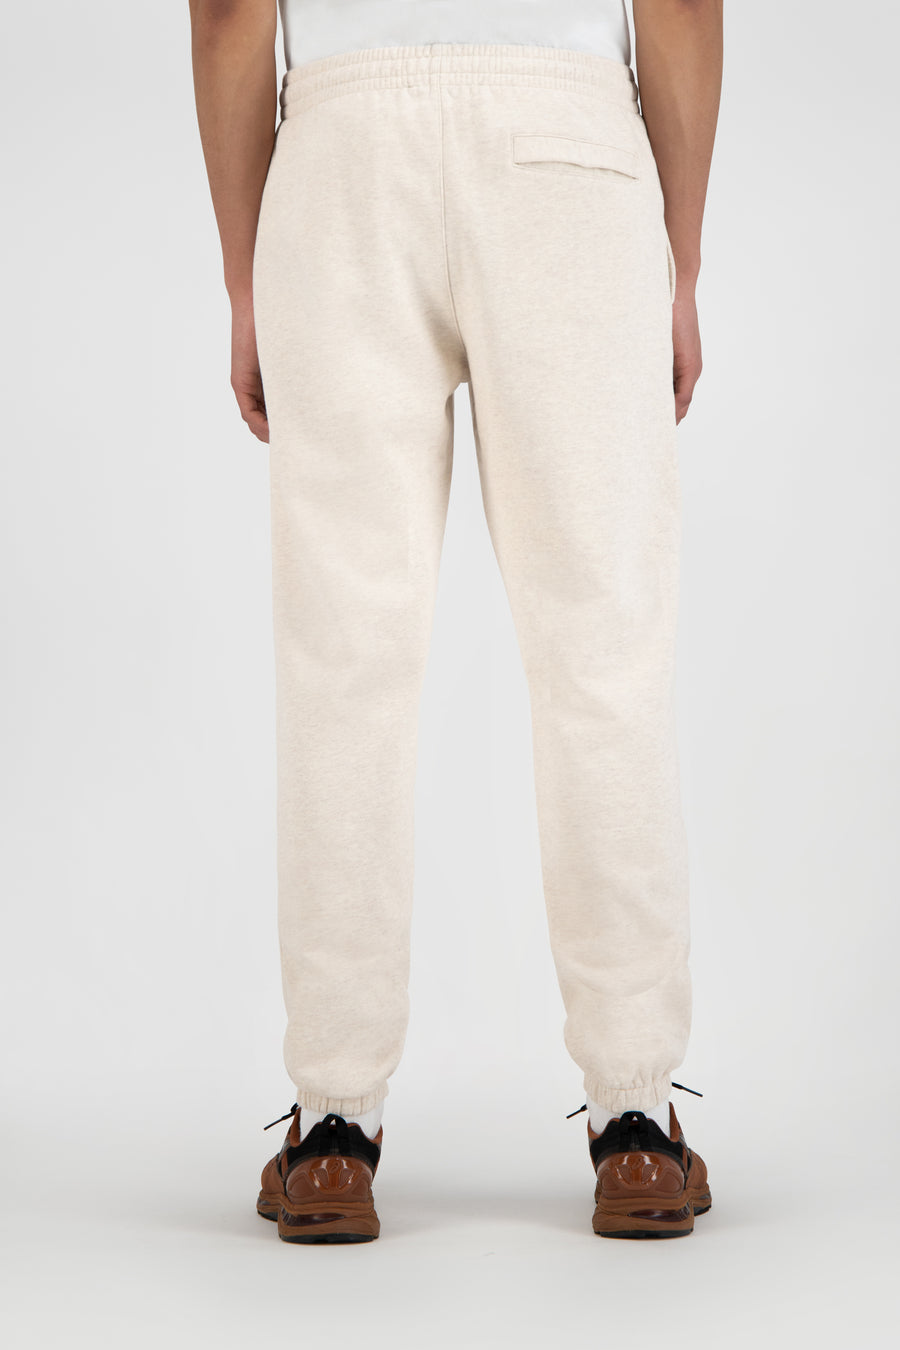 ØLÅF Uniform Sweatpant - Ecru Heather